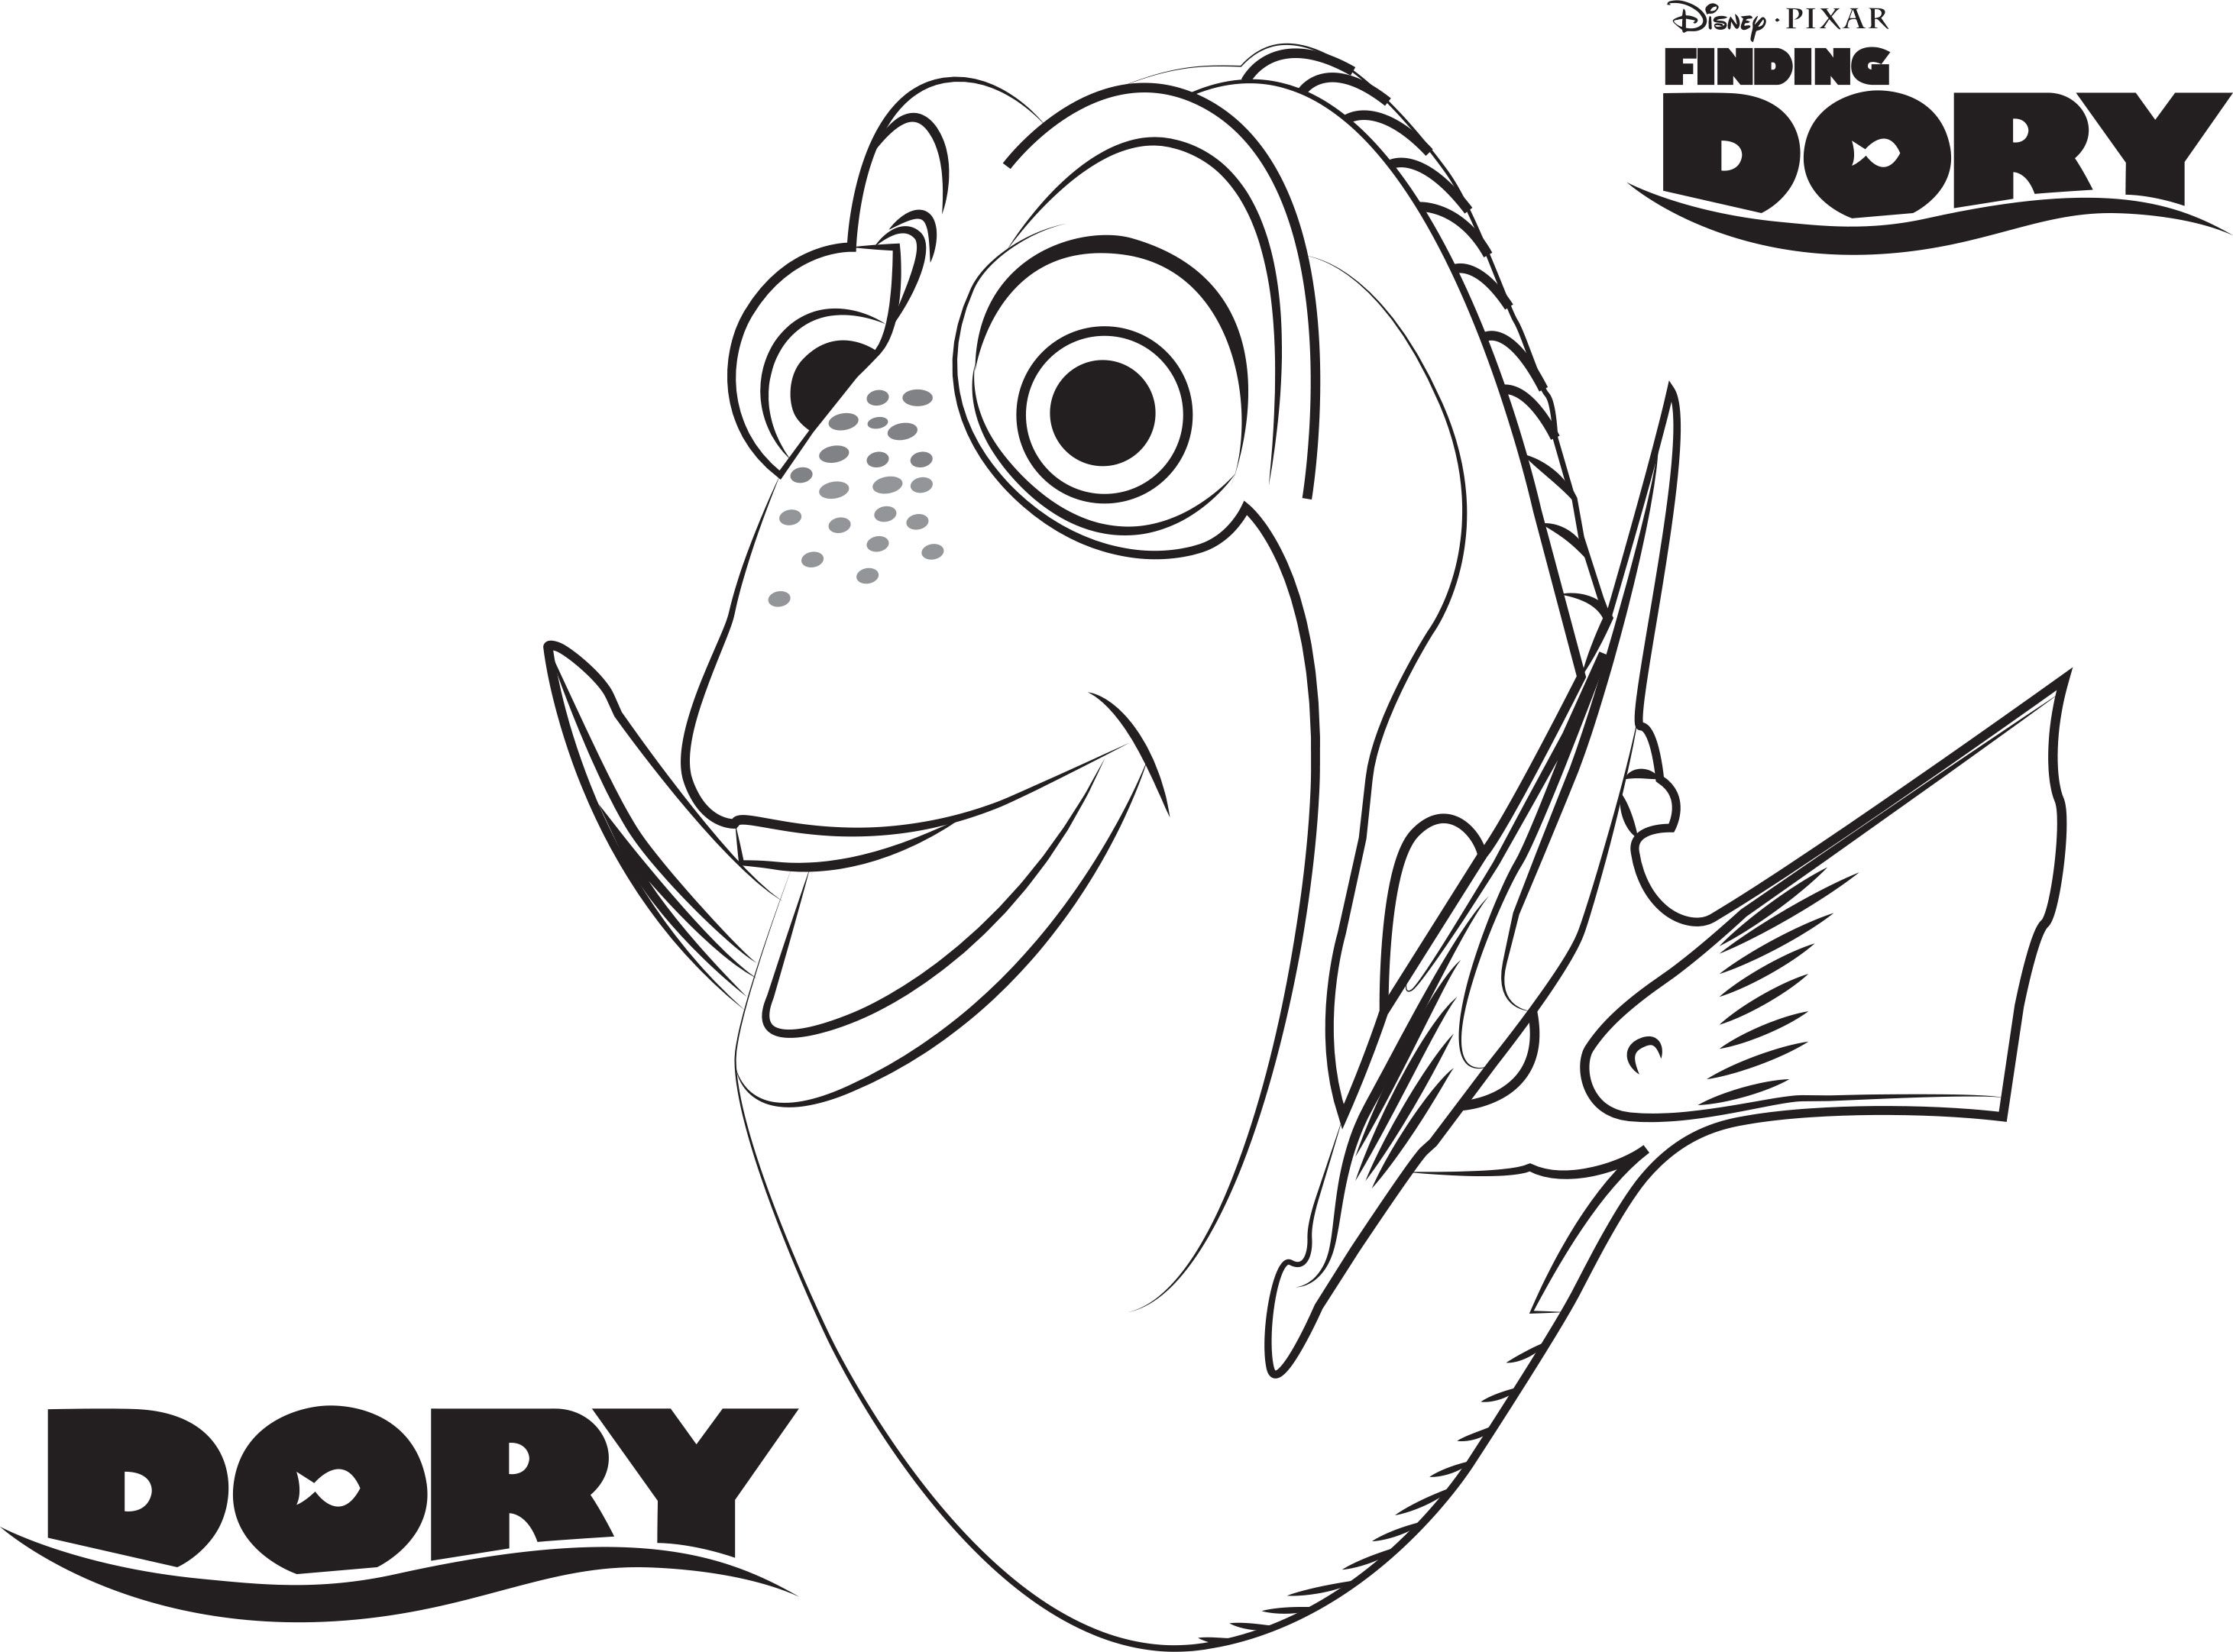 Dory Finding Dory Printable Coloring Page Nemo Coloring Pages Finding Nemo Coloring Pages Disney Coloring Pages